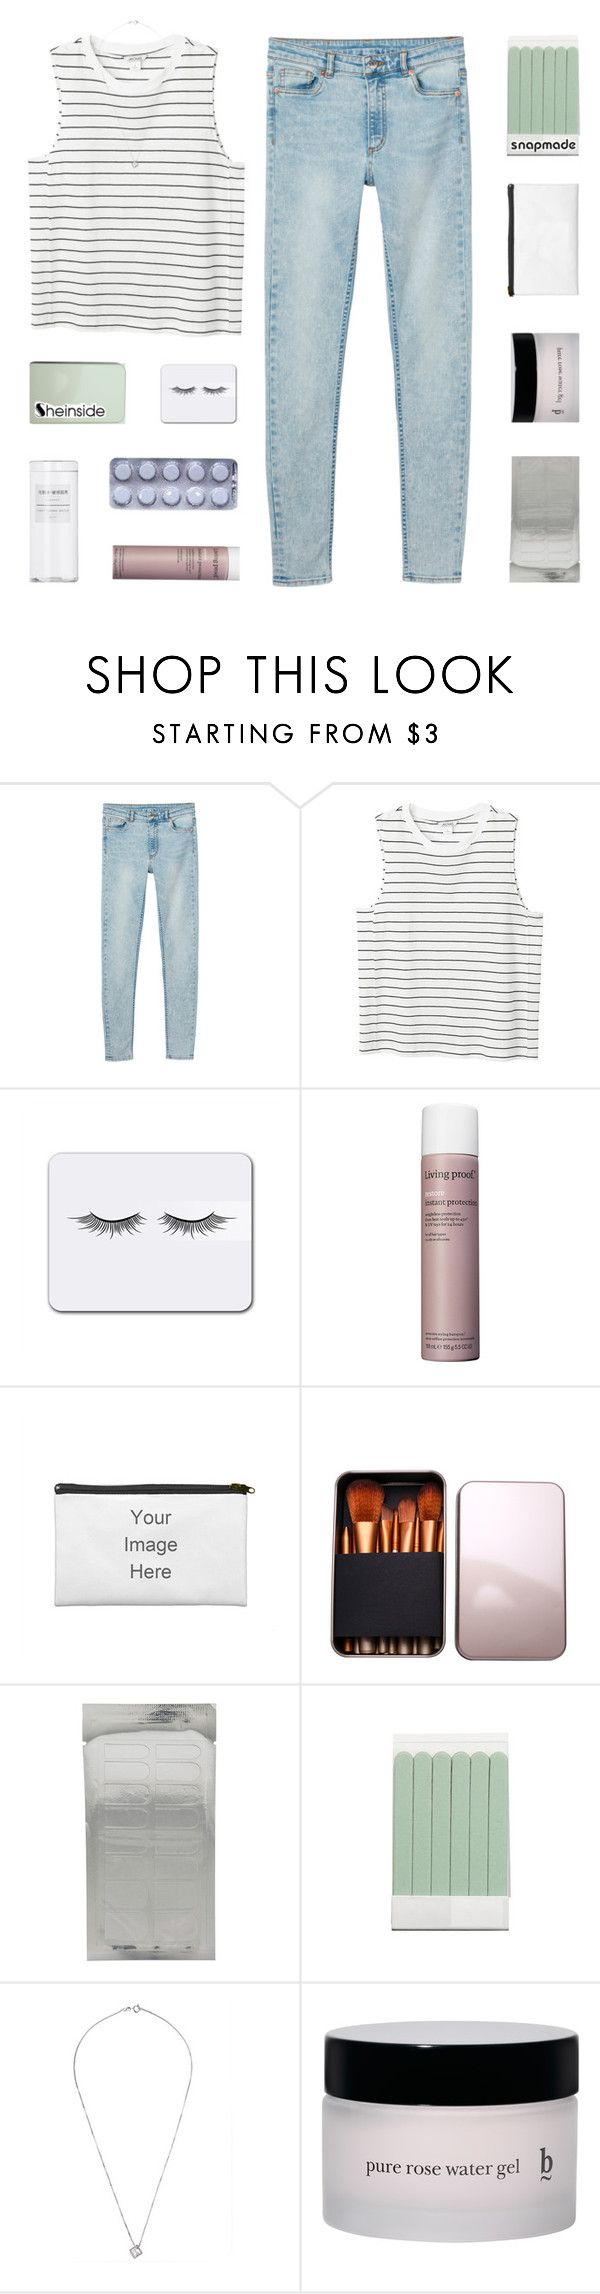 """""""watch me make this set!"""" by kristen-gregory-sexy-sports-babe ❤ liked on Polyvore featuring Monki, Muji, Living Proof, The Body Shop and melsunicorns"""